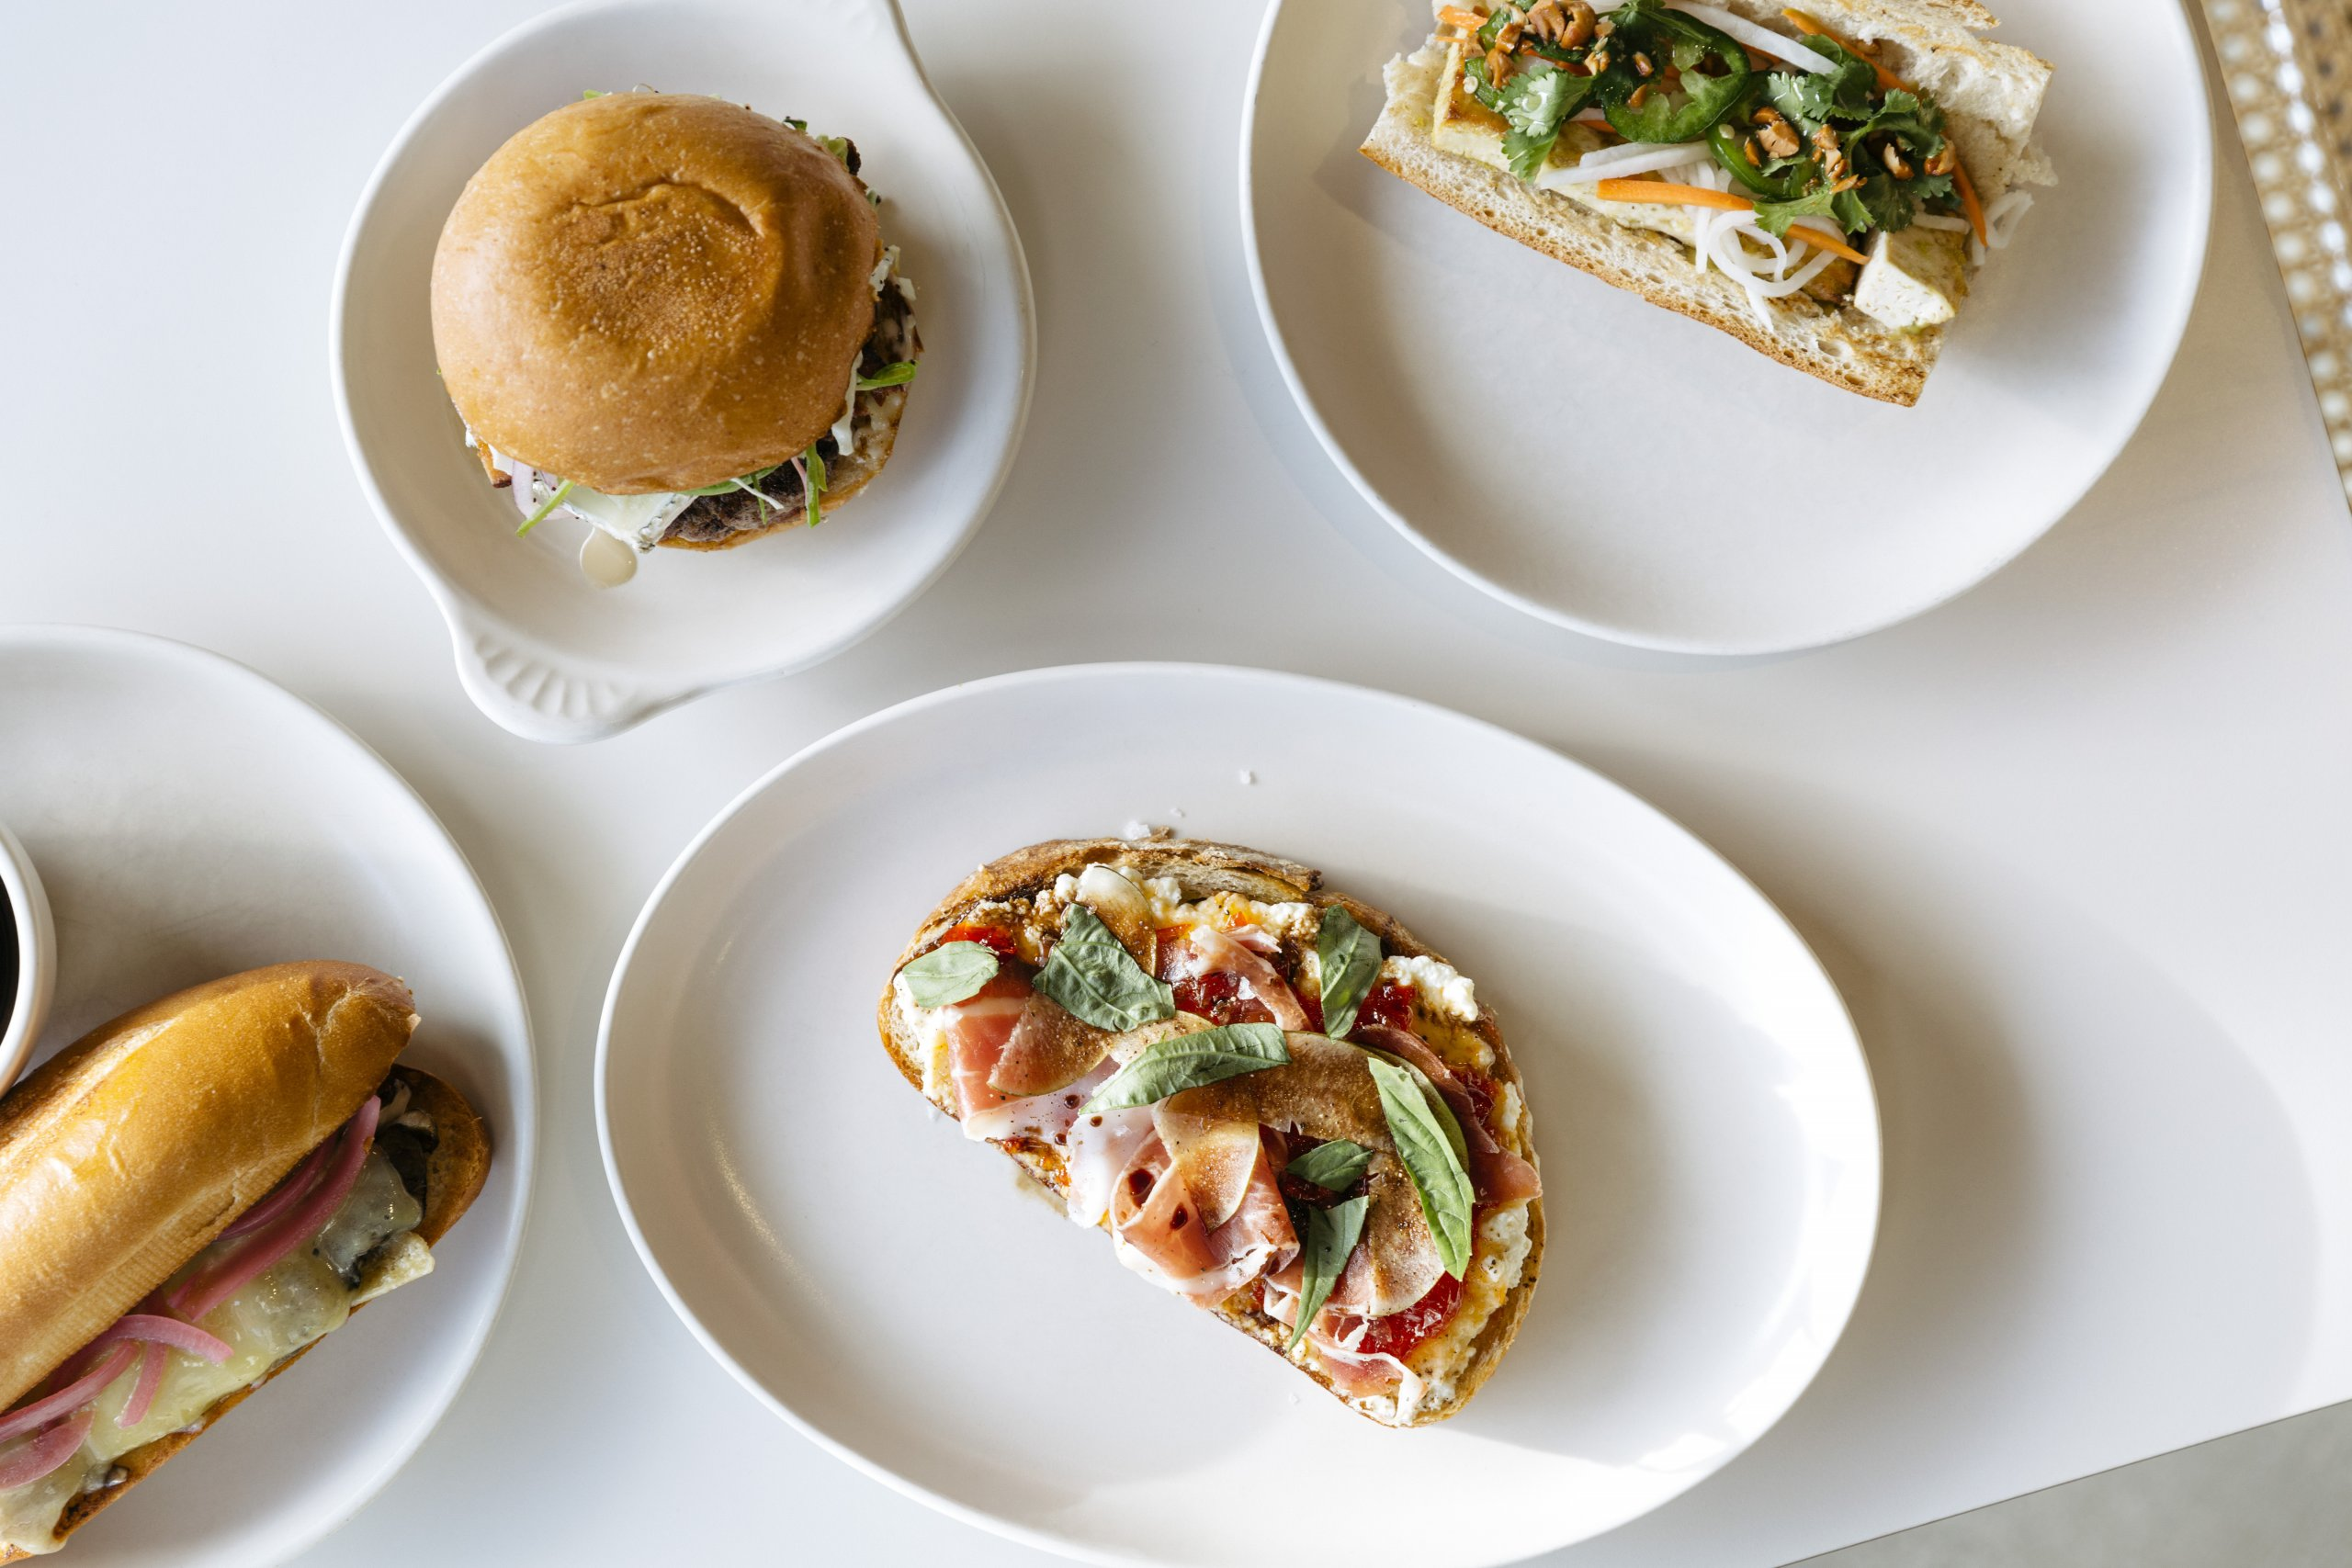 Winsome Opens in L.A.'s Playa District